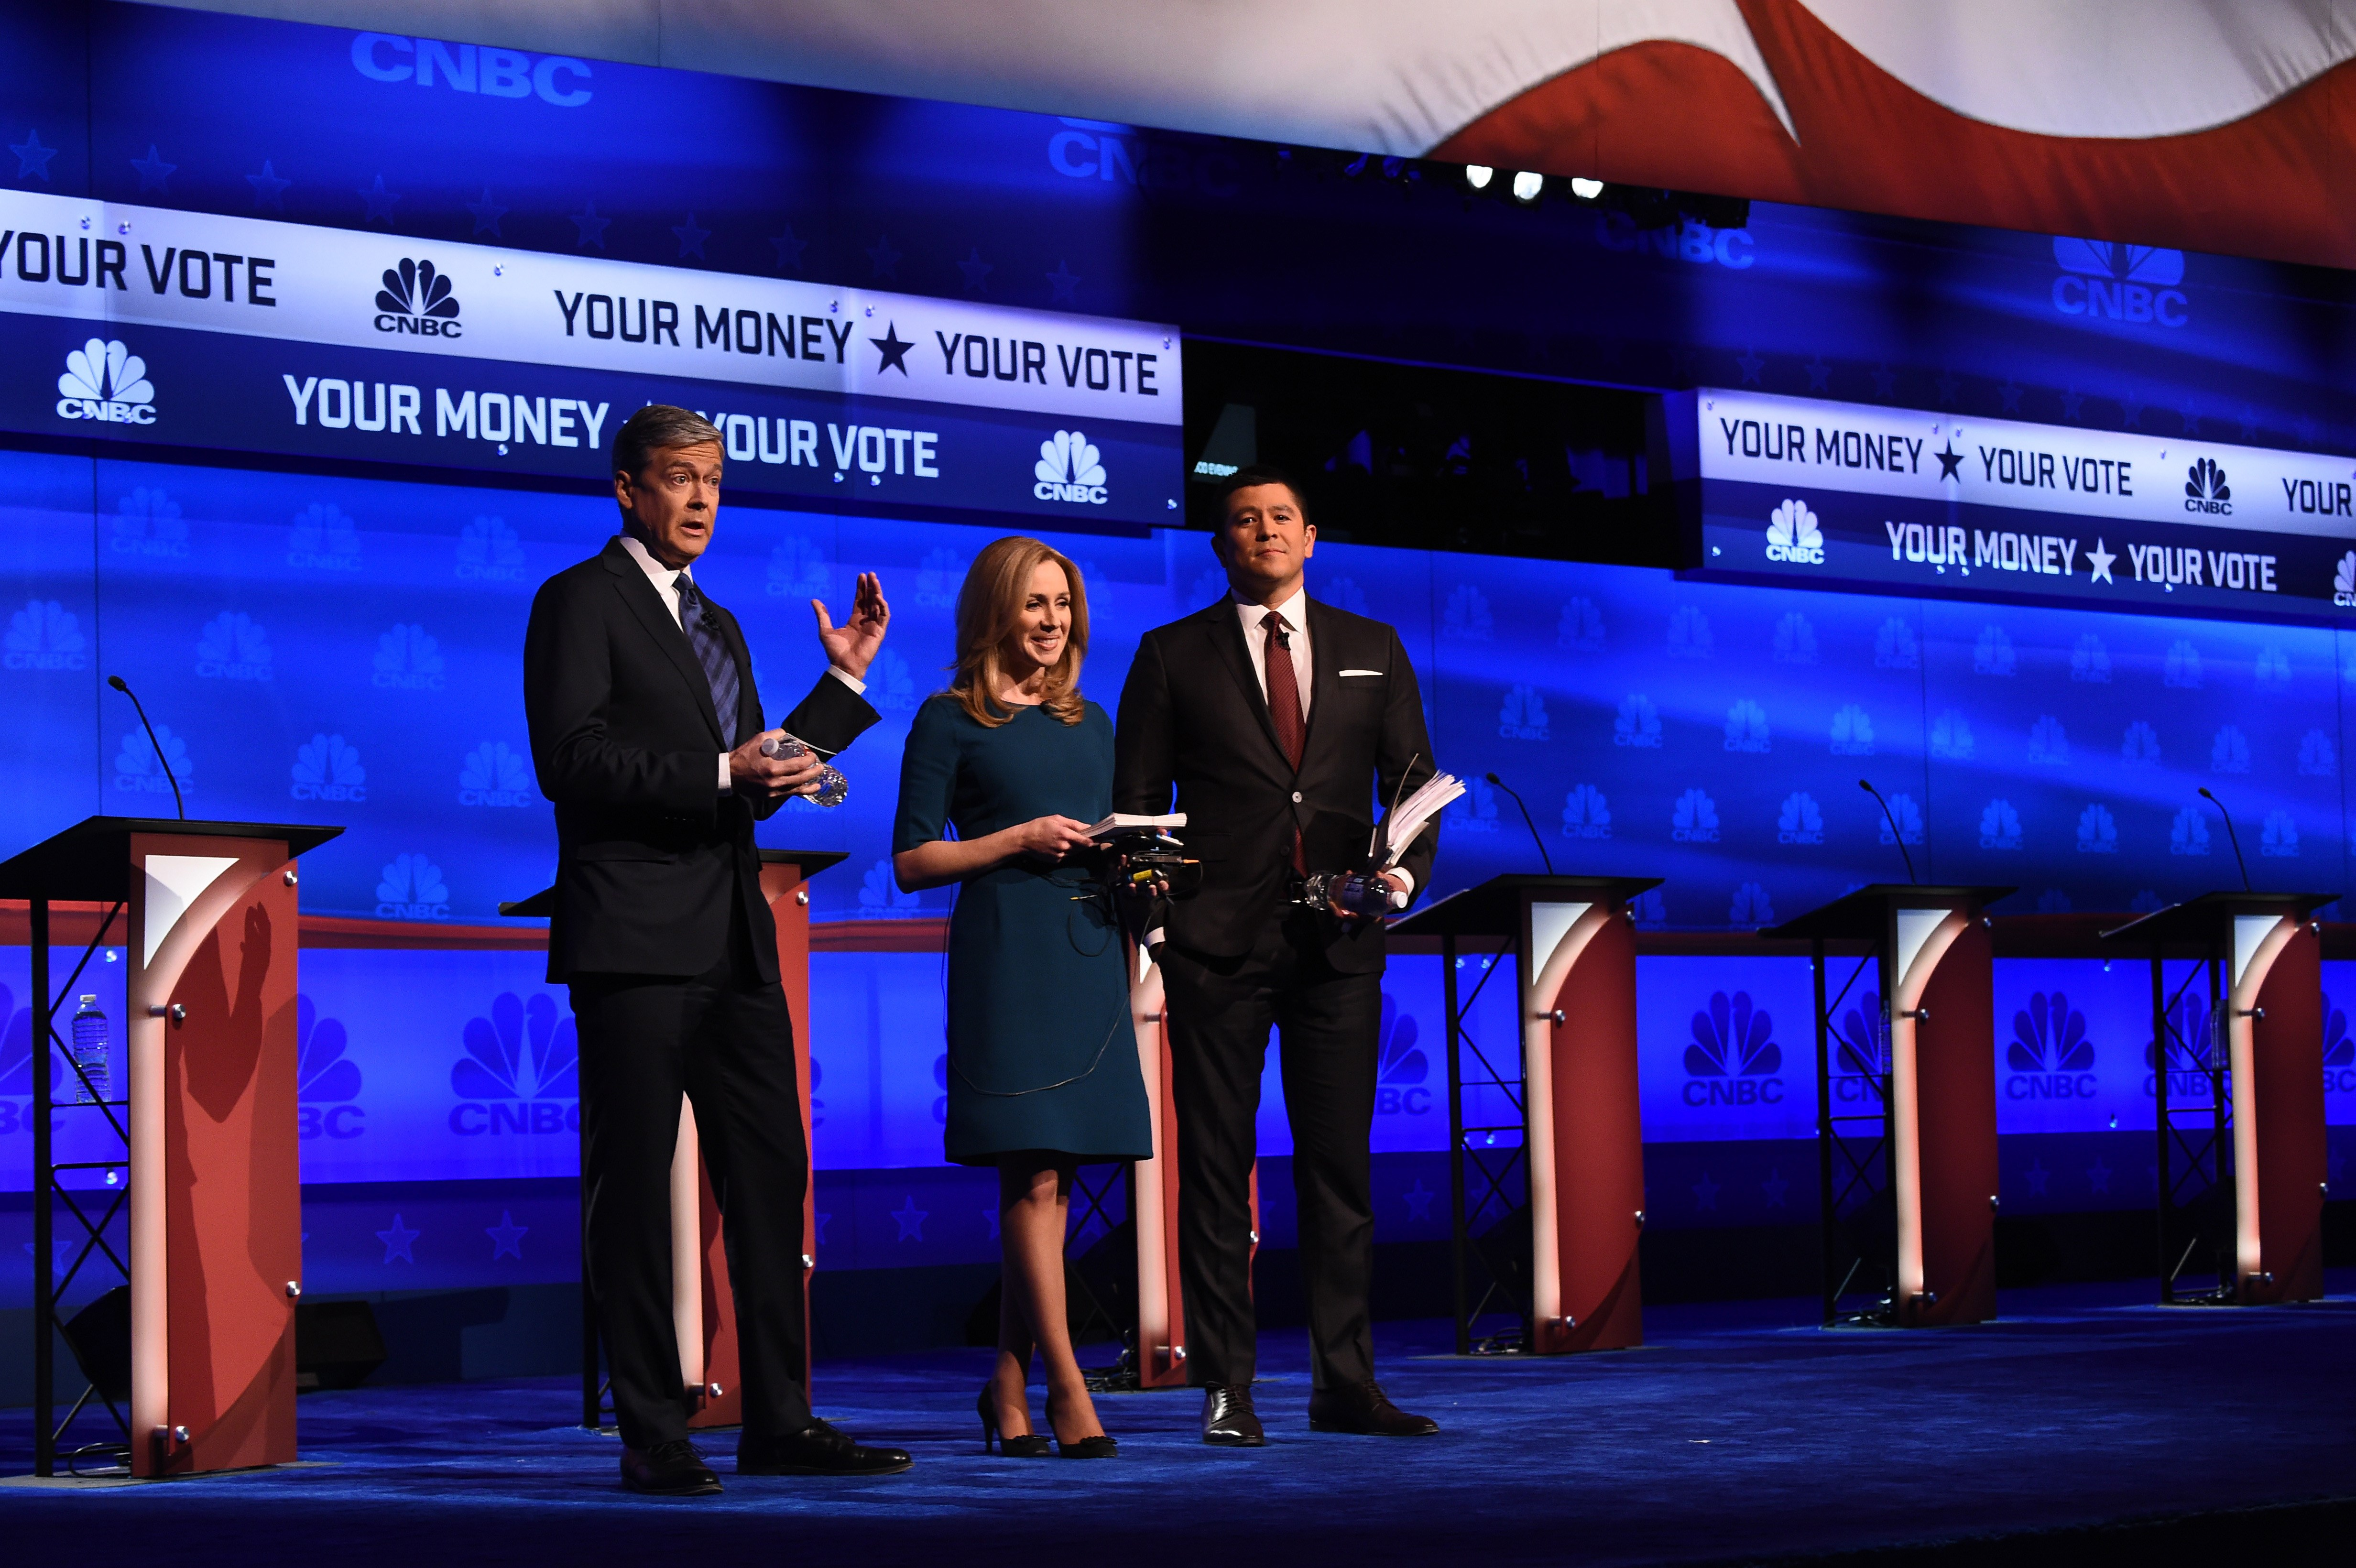 Debate moderators John Harwood (L), Becky Quick (C) and Carl Quintanilla take the stage at the third Republican Presidential Debate hosted by CNBC, October 28, 2015 at the Coors Event Center at the University of Colorado in Boulder, Colorado.  AFP PHOTO / ROBYN BECK        (Photo credit should read ROBYN BECK/AFP/Getty Images)